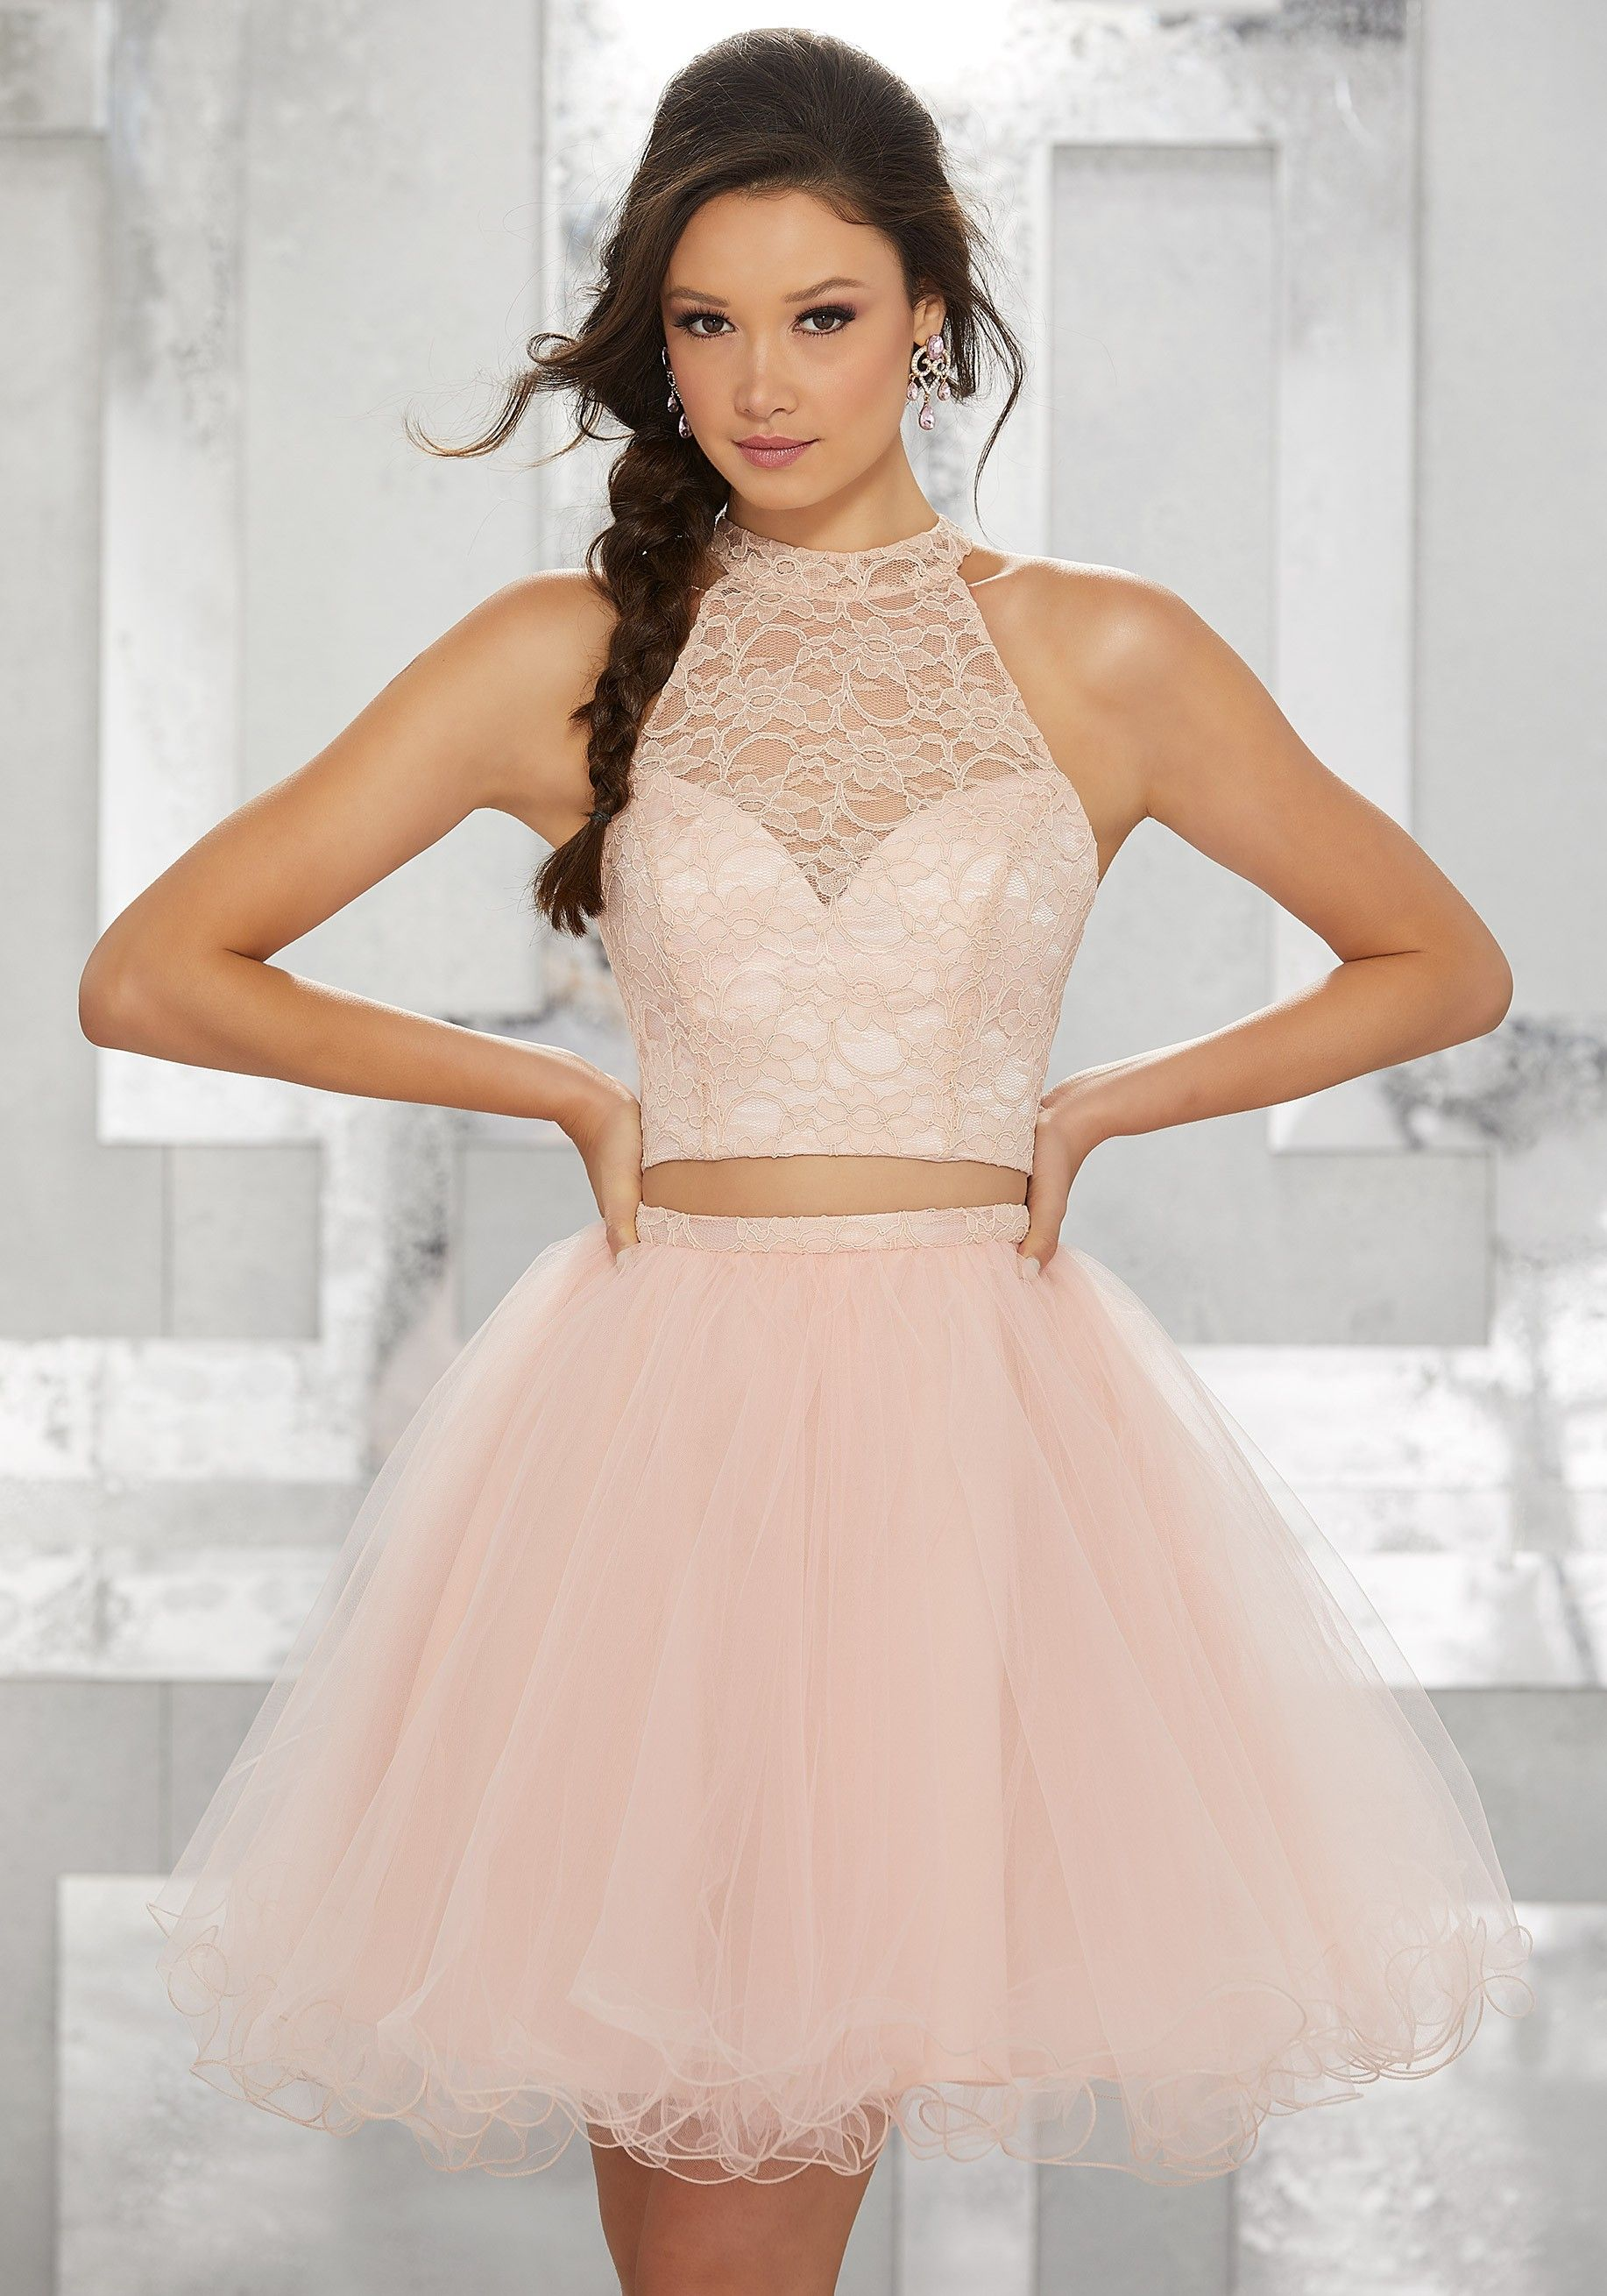 This femine two piece features a crop top with a sweetheart neckline with a  halter lace overlay. The full tull skirt is completed with ... b16697e48fe5